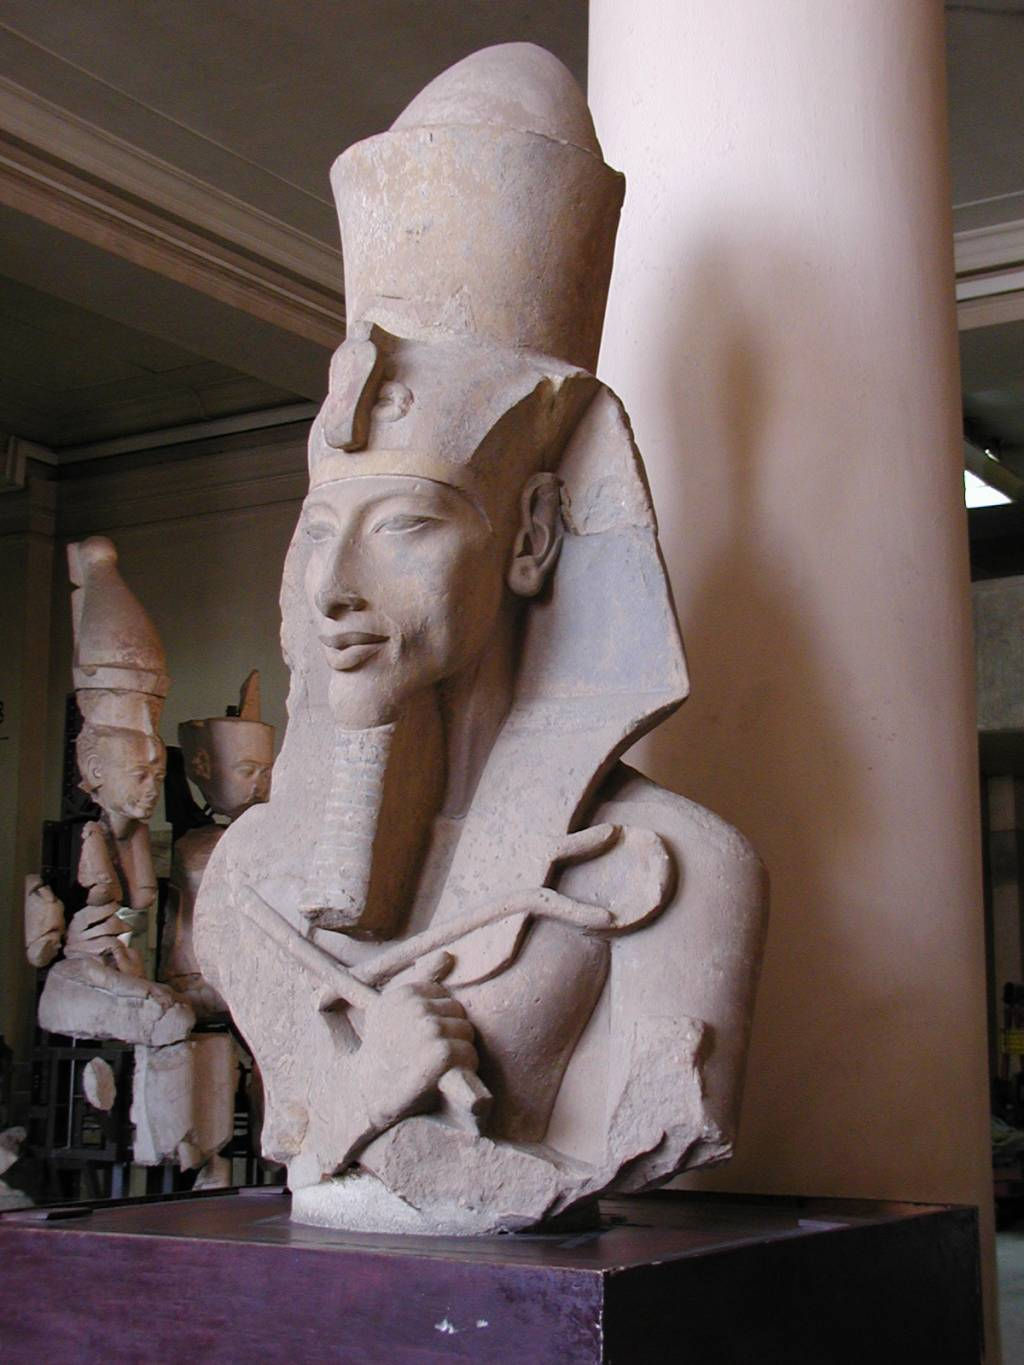 amenhotep iv and art and religion essay